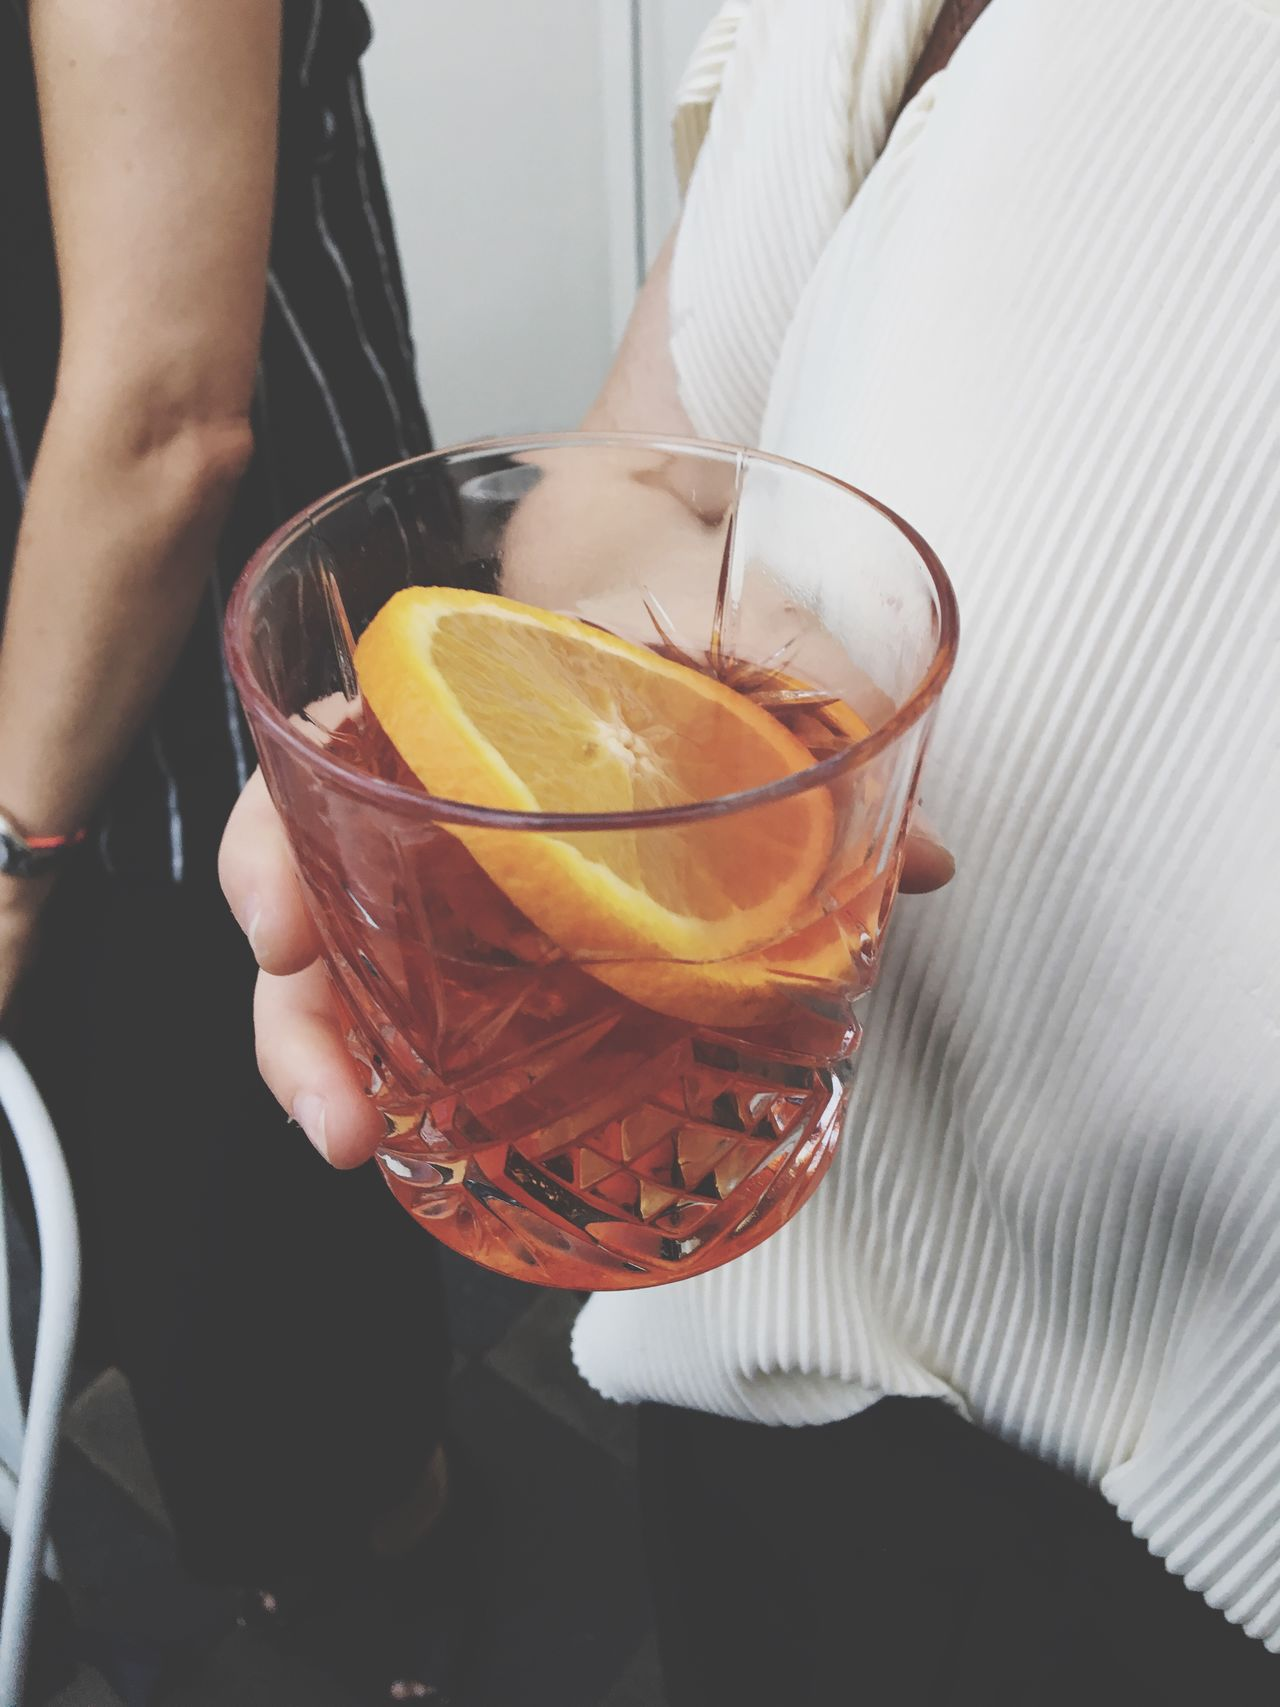 EyeEm Selects Food And Drink Drink Refreshment Drinking Glass Freshness Indoors  Real People Holding Healthy Eating One Person Women Mixing Day Food Close-up People